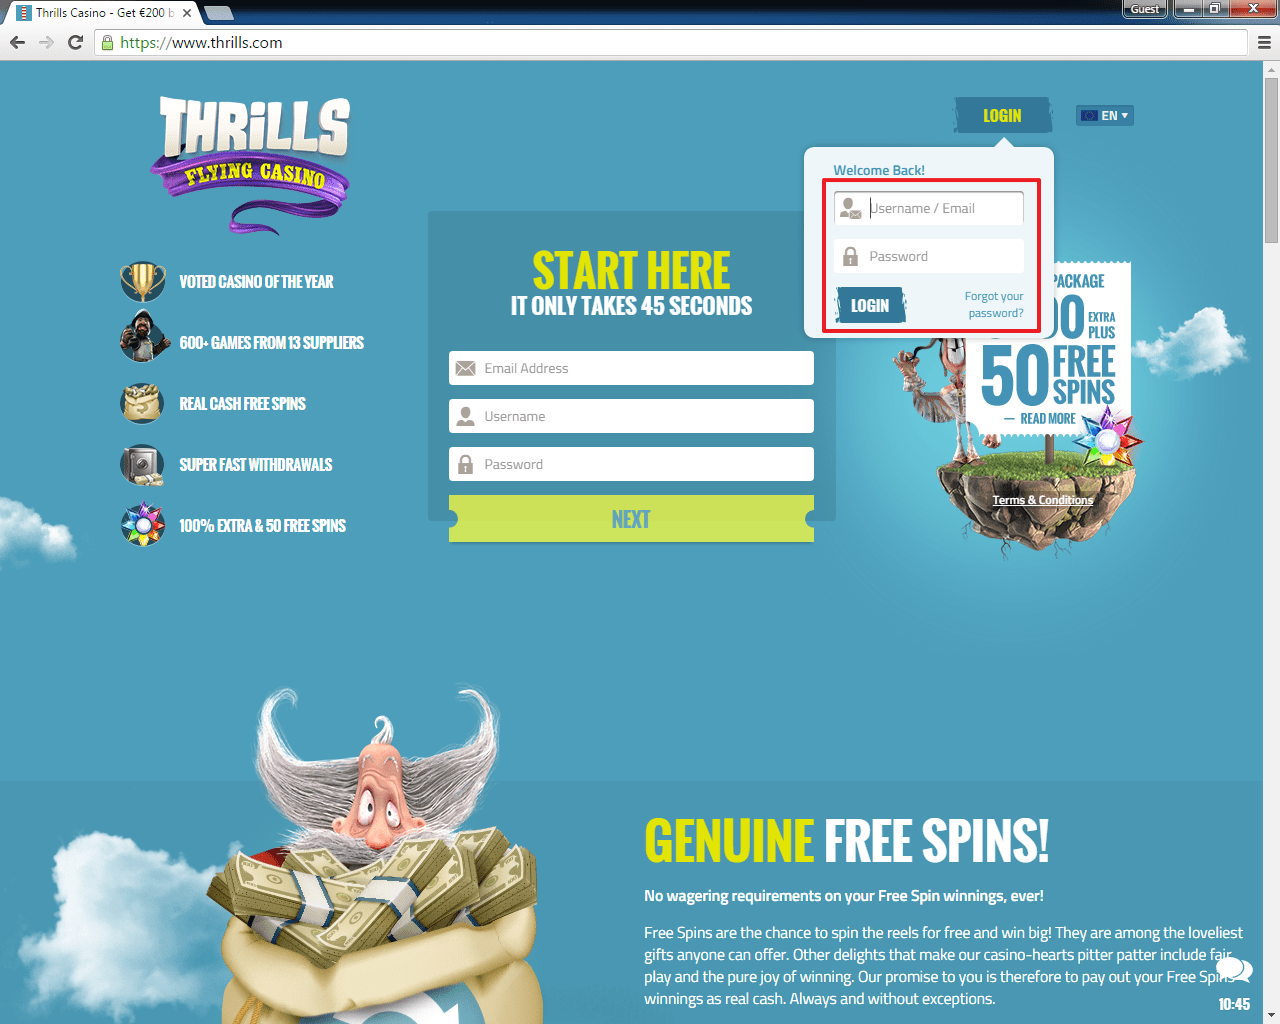 Thrills casino login 2